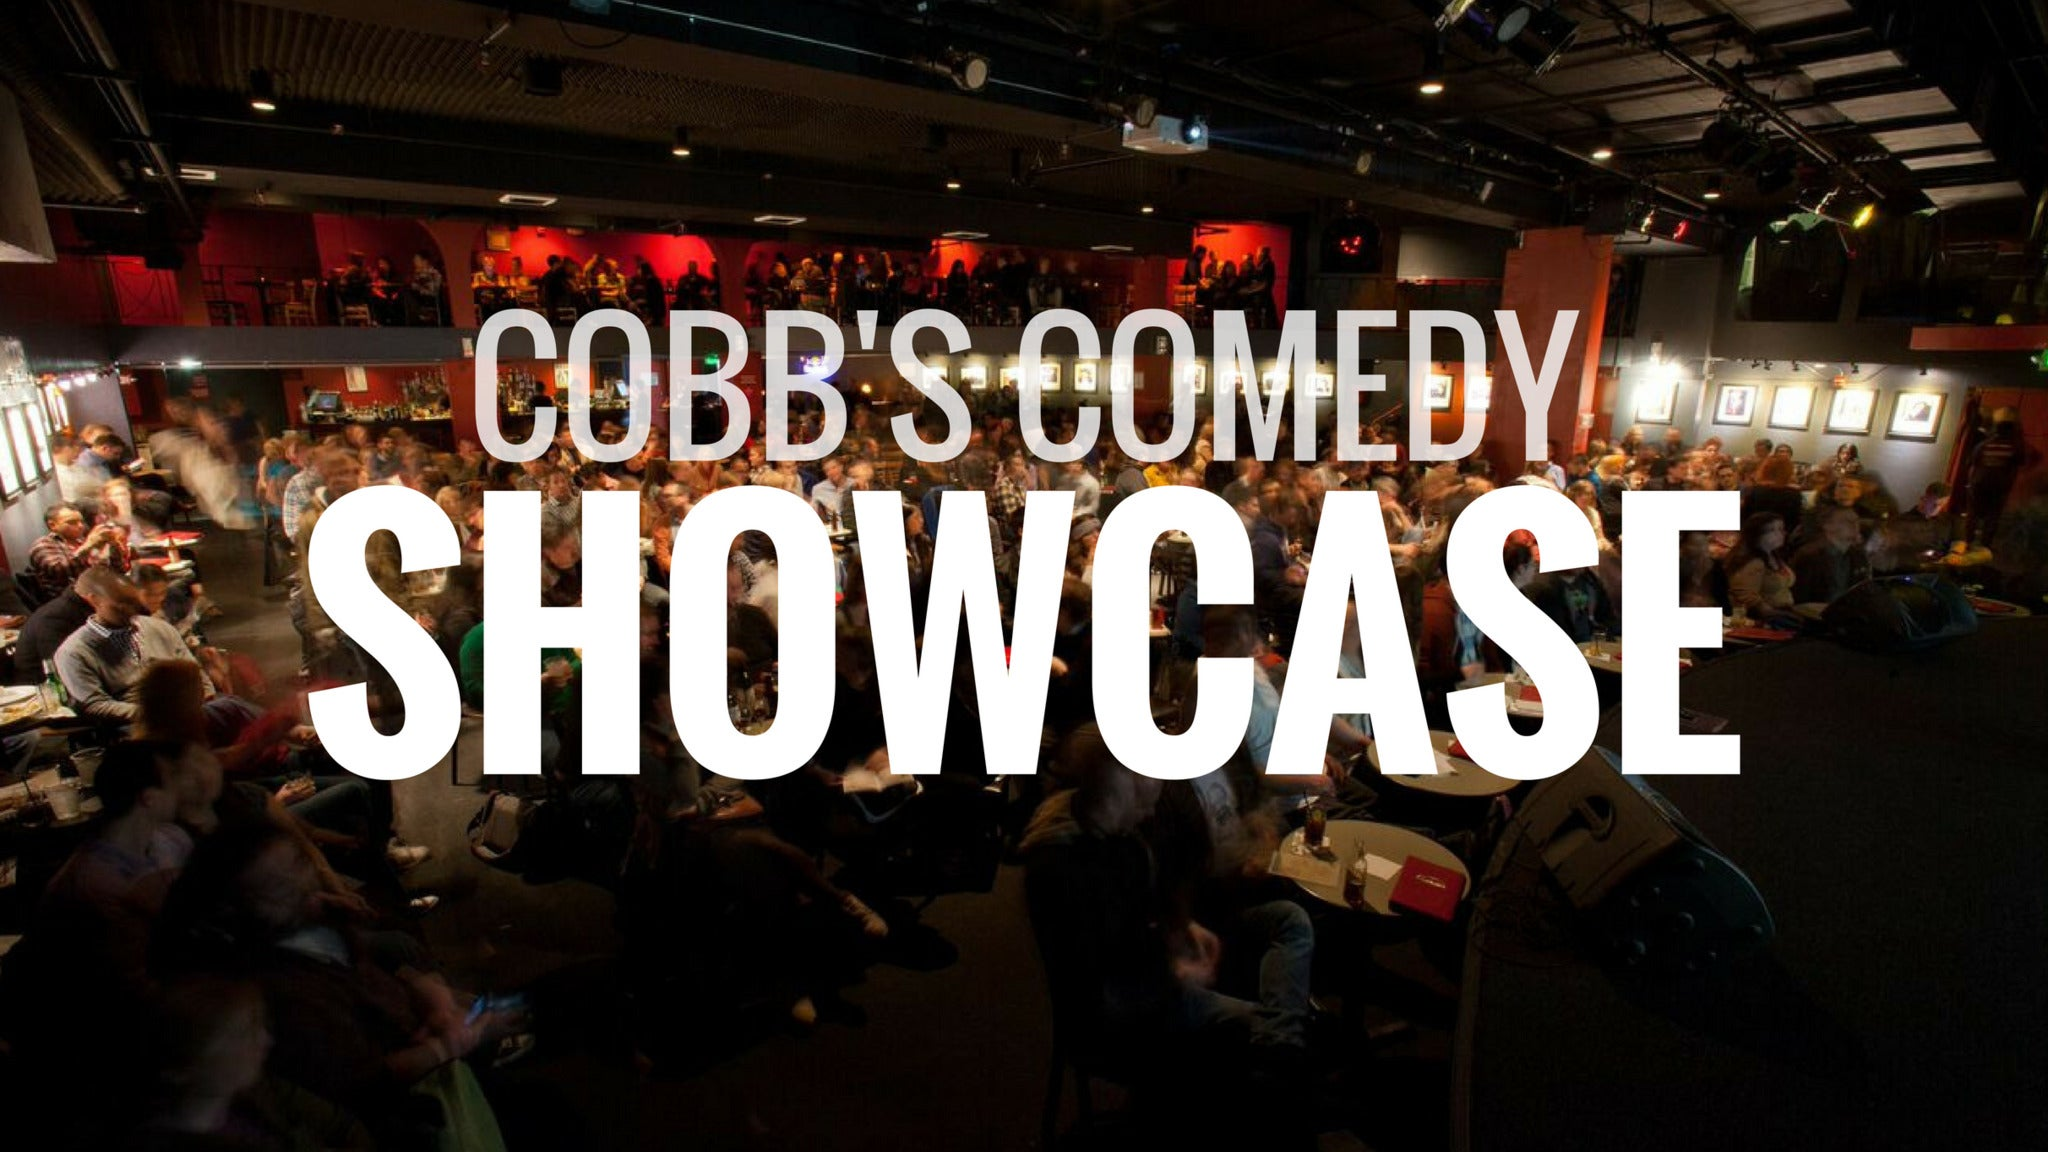 Cobb's Comedy Showcase at Cobb's Comedy Club in San ...